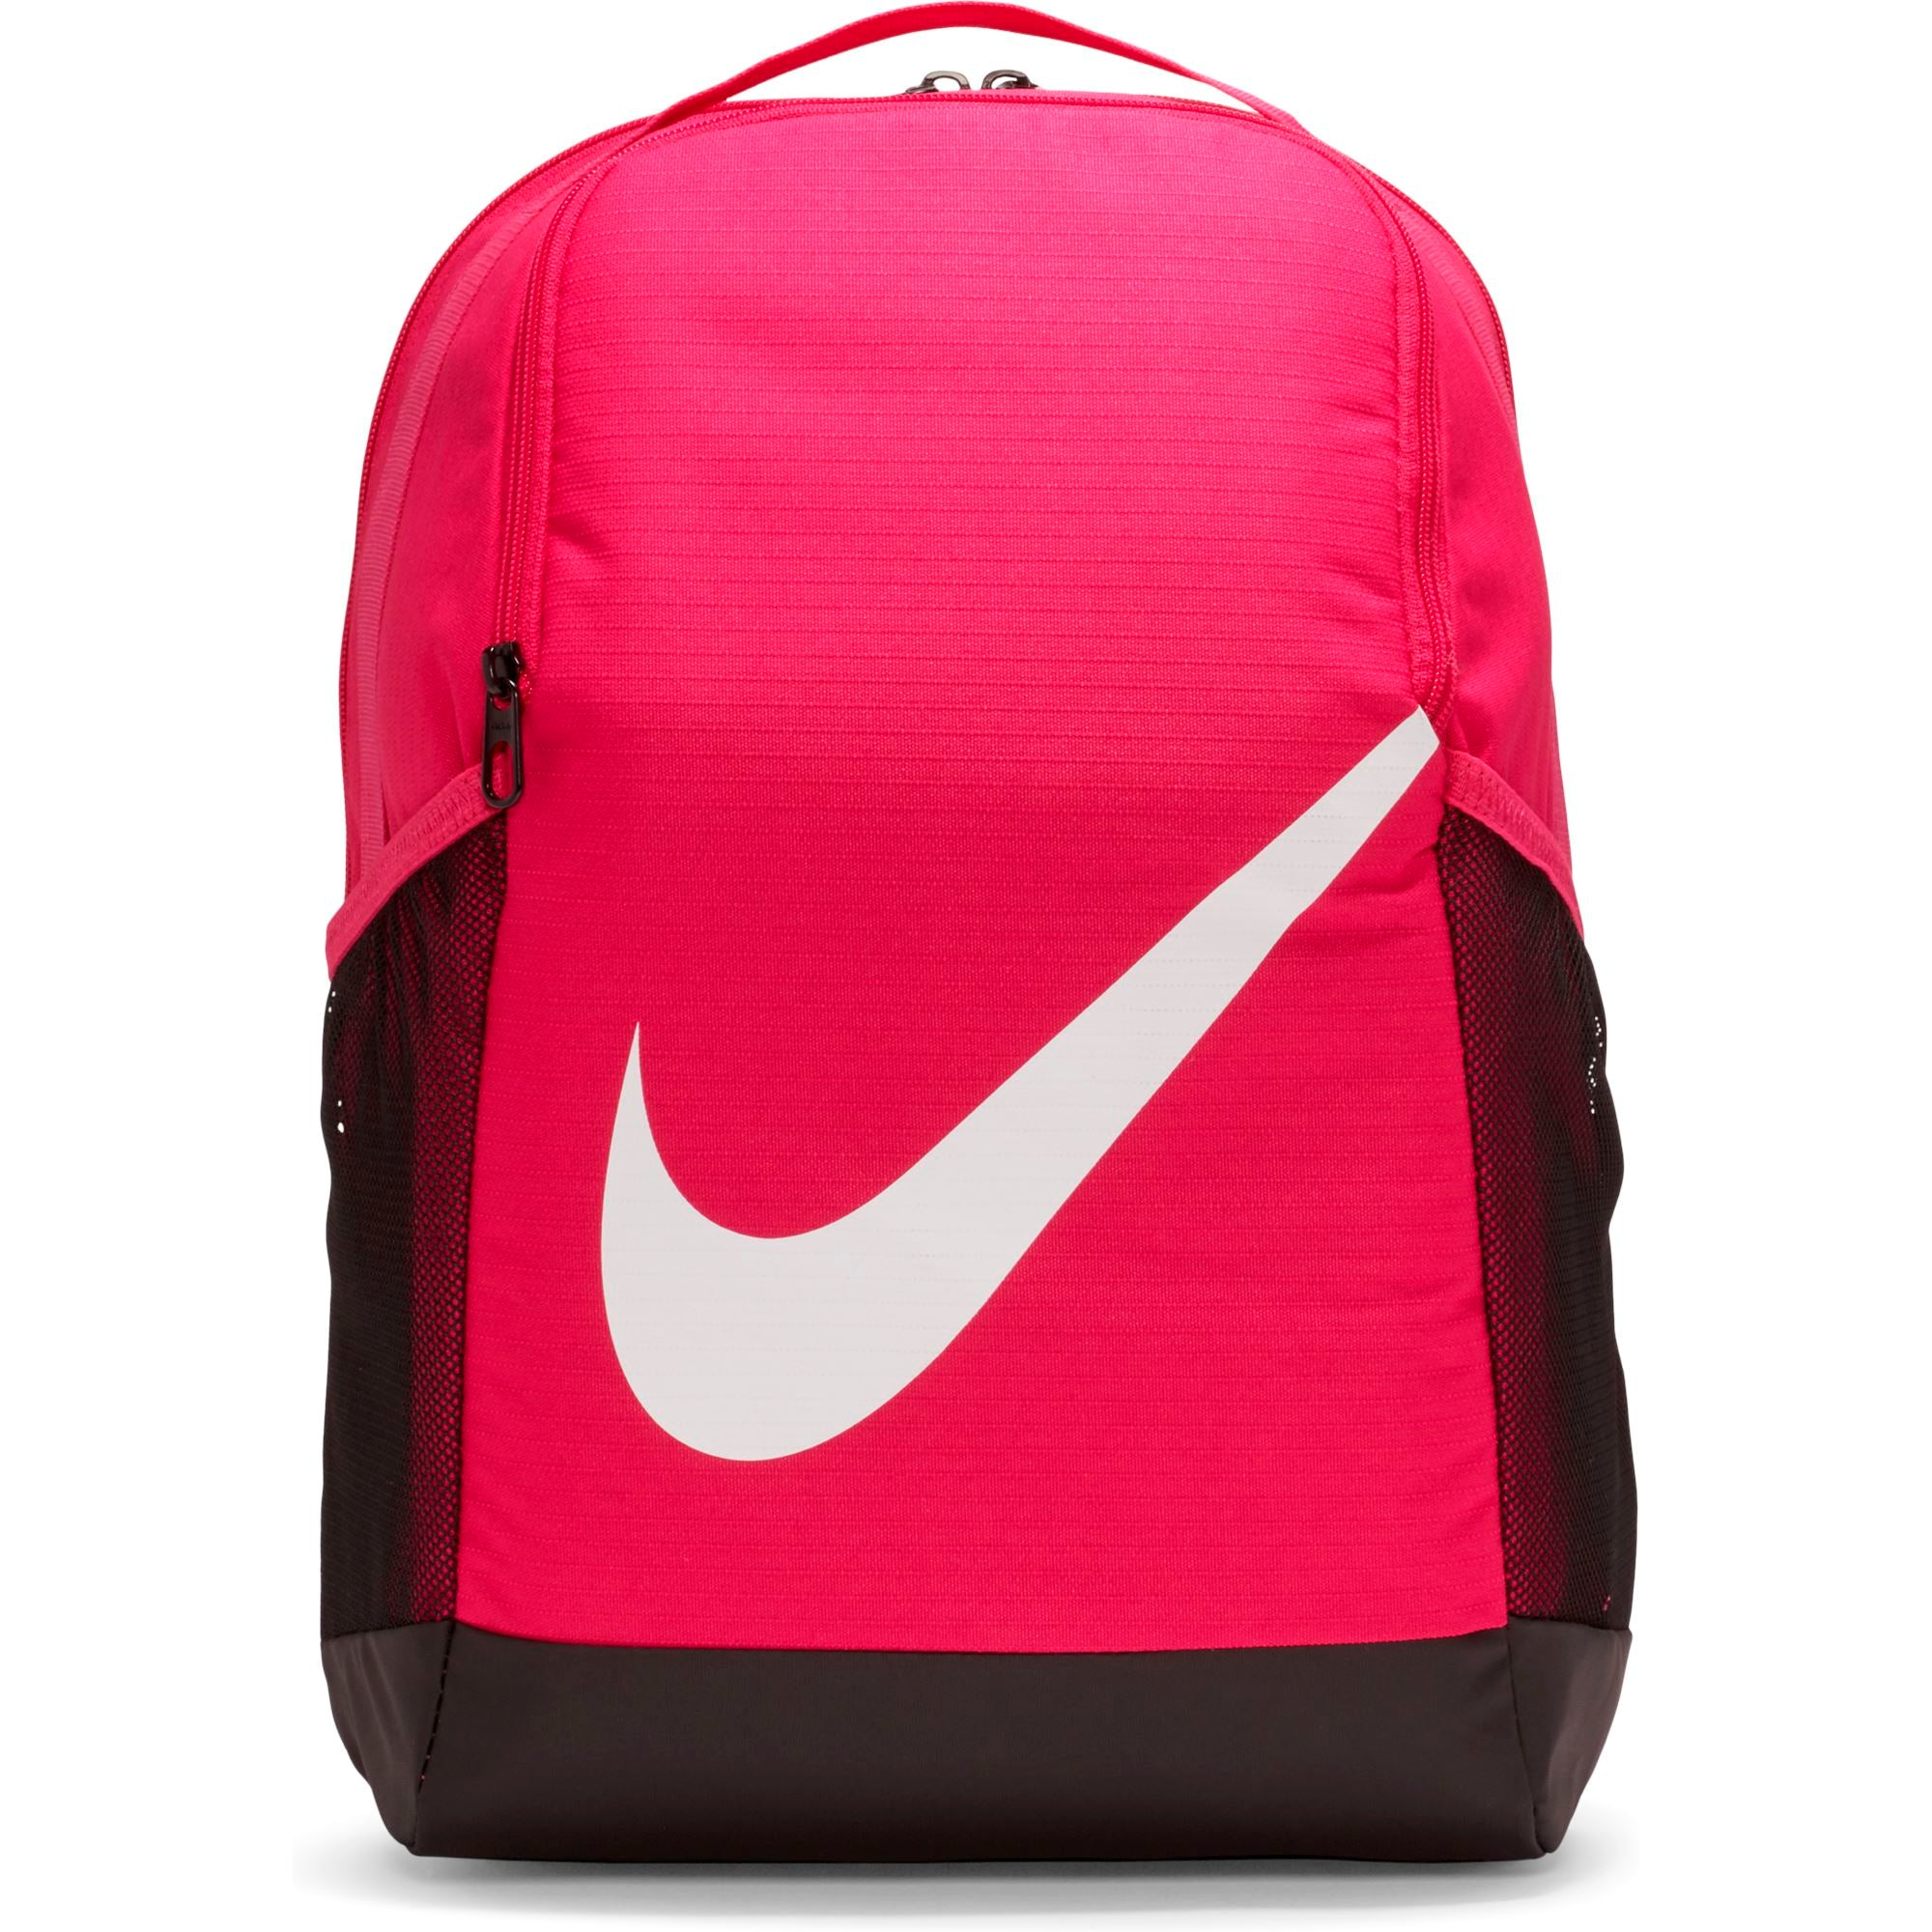 Nike Kids Brasilia Backpack - Fireberry/White SP-Accessories-Bags Nike